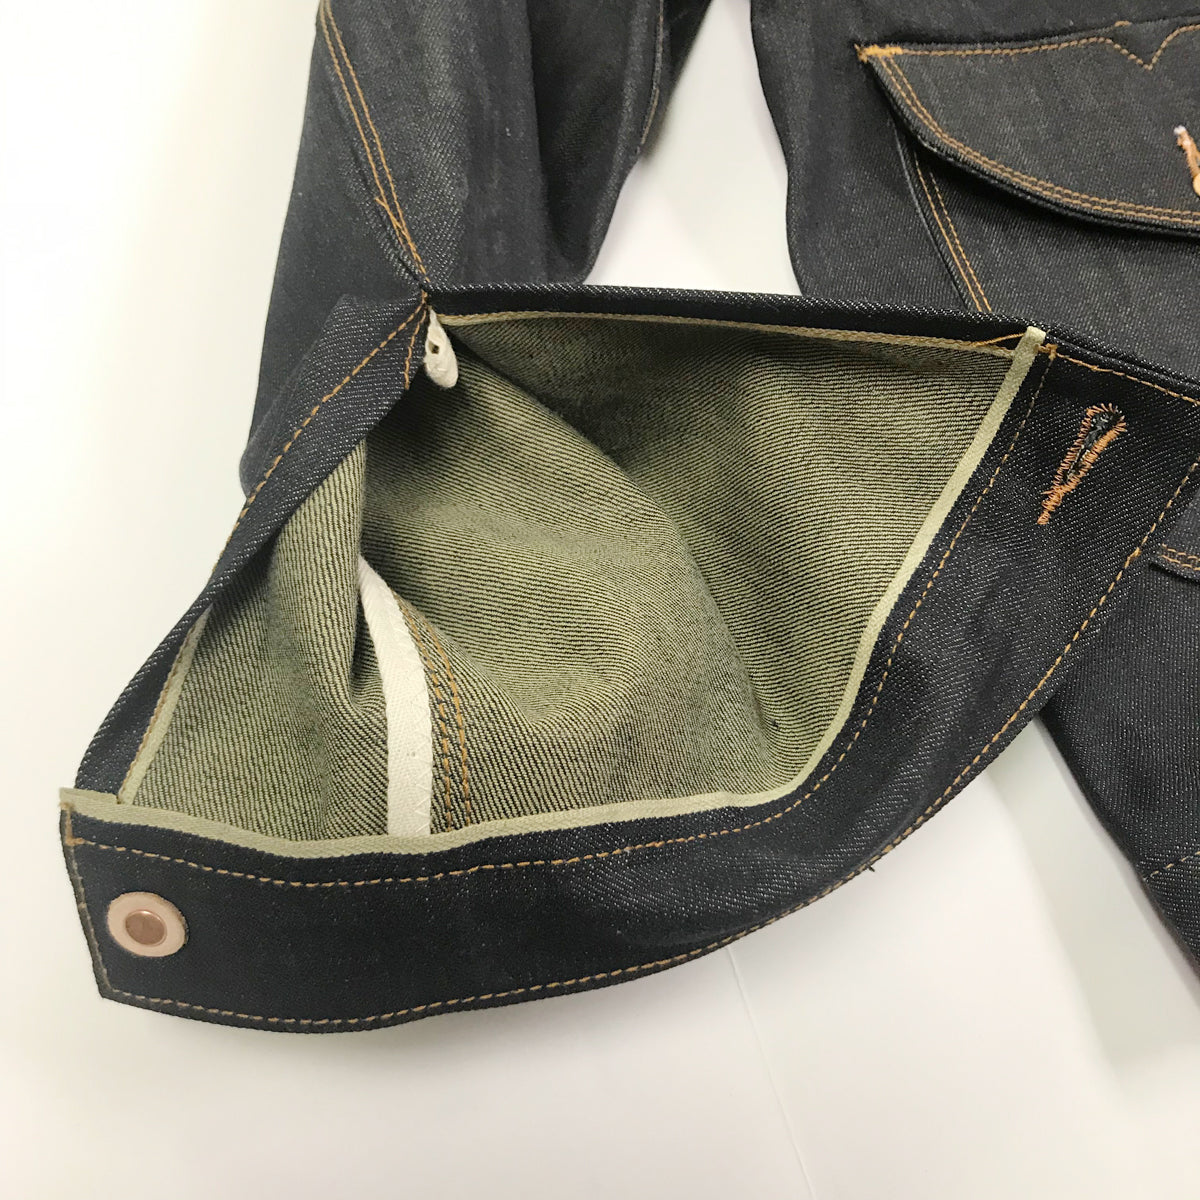 14oz USA Cone Mills Natural indigo Cattleman Racer Jacket Selvage Denim